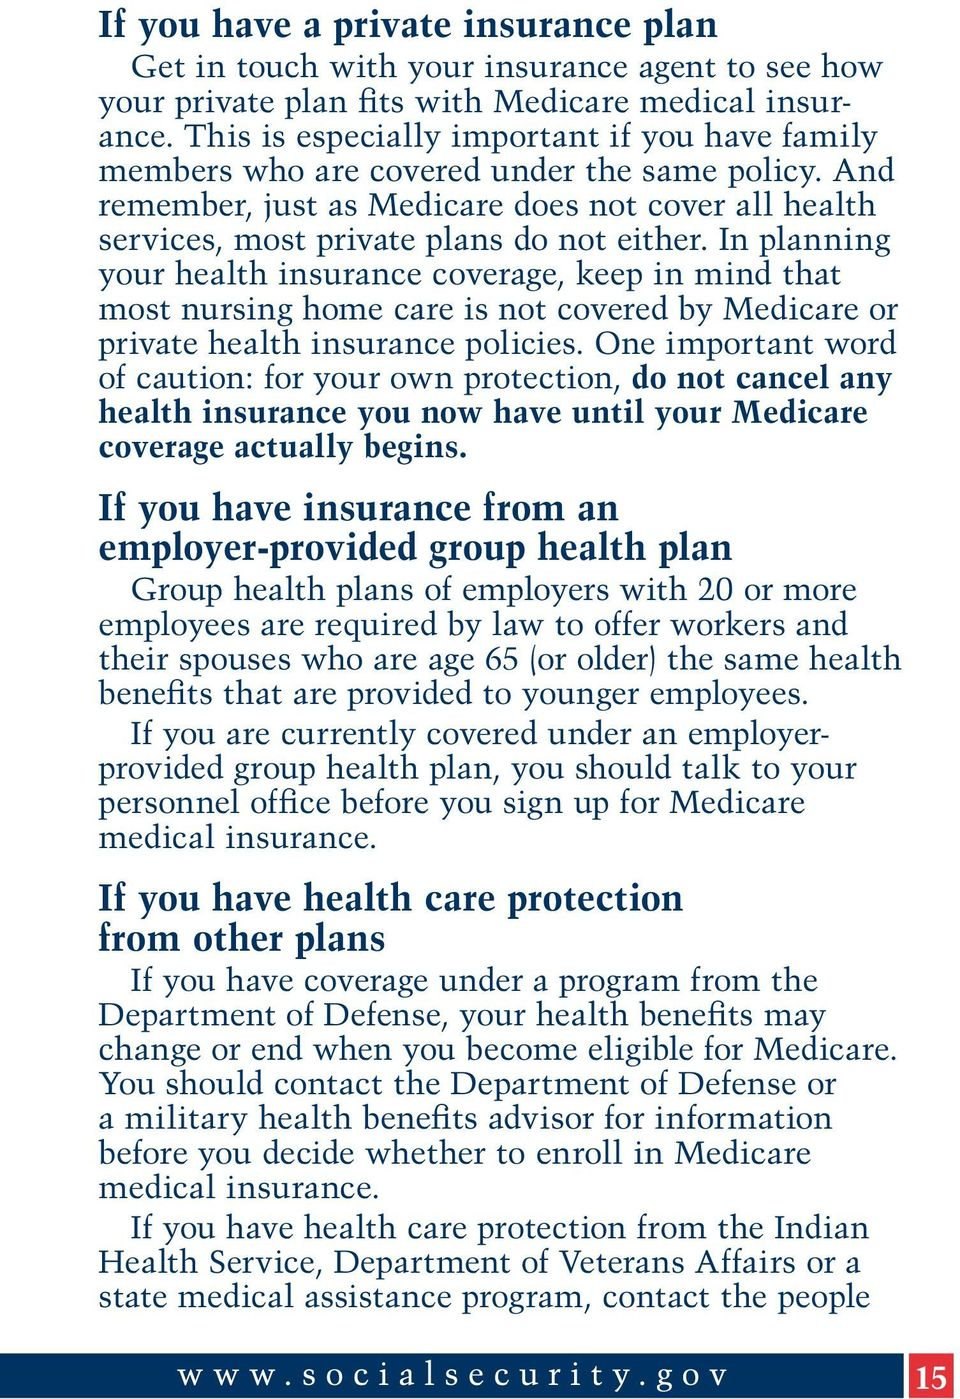 In planning your health insurance coverage, keep in mind that most nursing home care is not covered by Medicare or private health insurance policies.